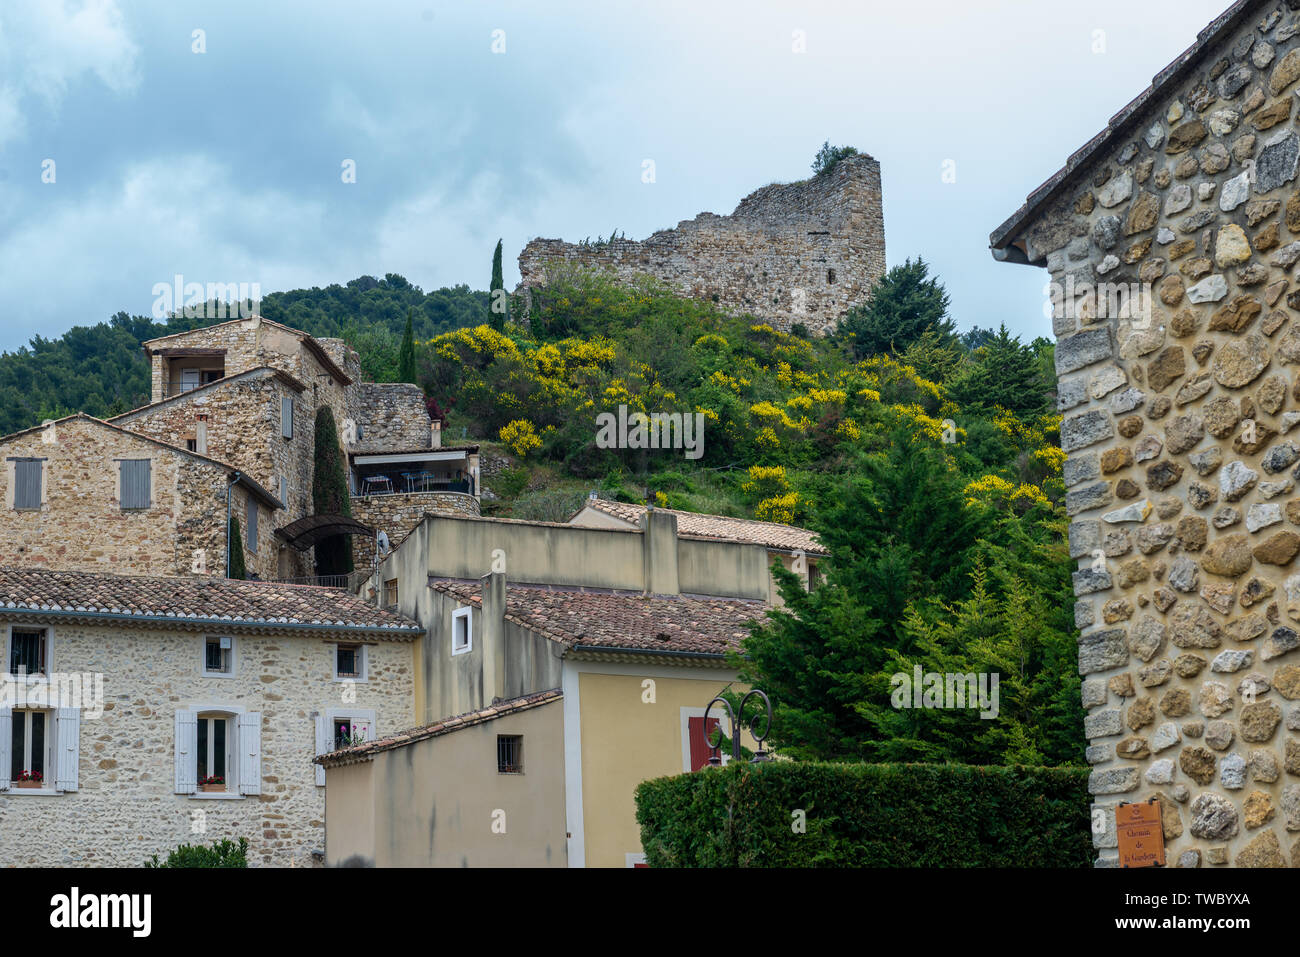 Castle ruins at the ancient city of Gigondas in southern France. Stock Photo